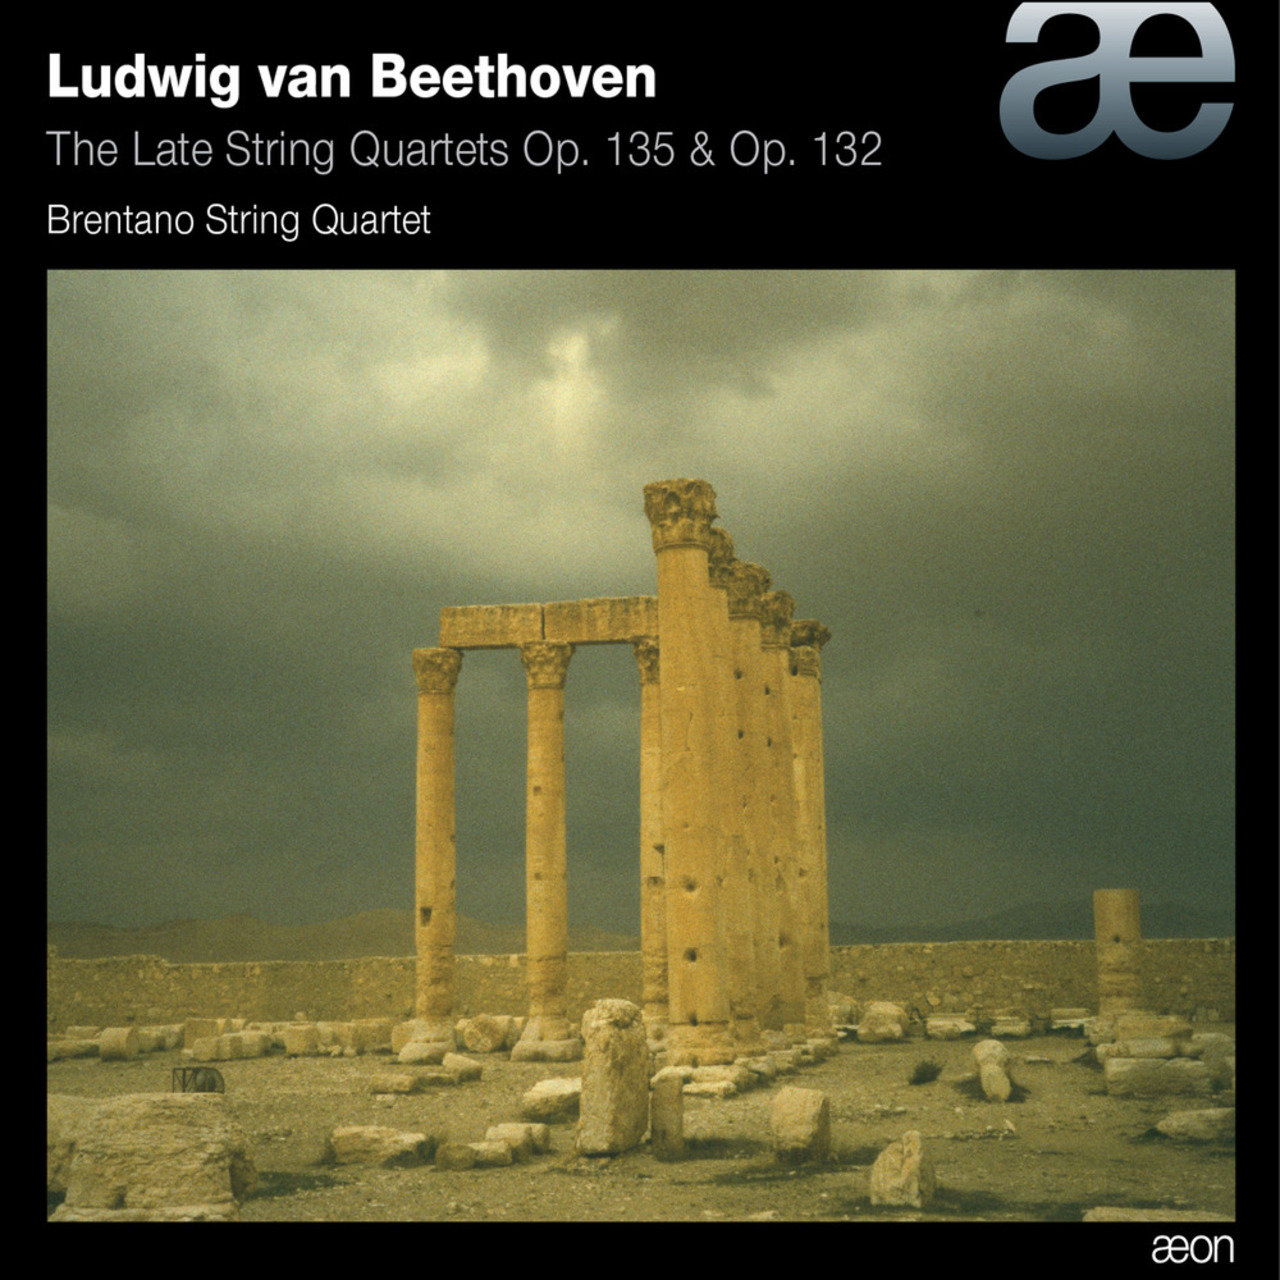 Beethoven: The Late String Quartets Op. 135 & Op. 132